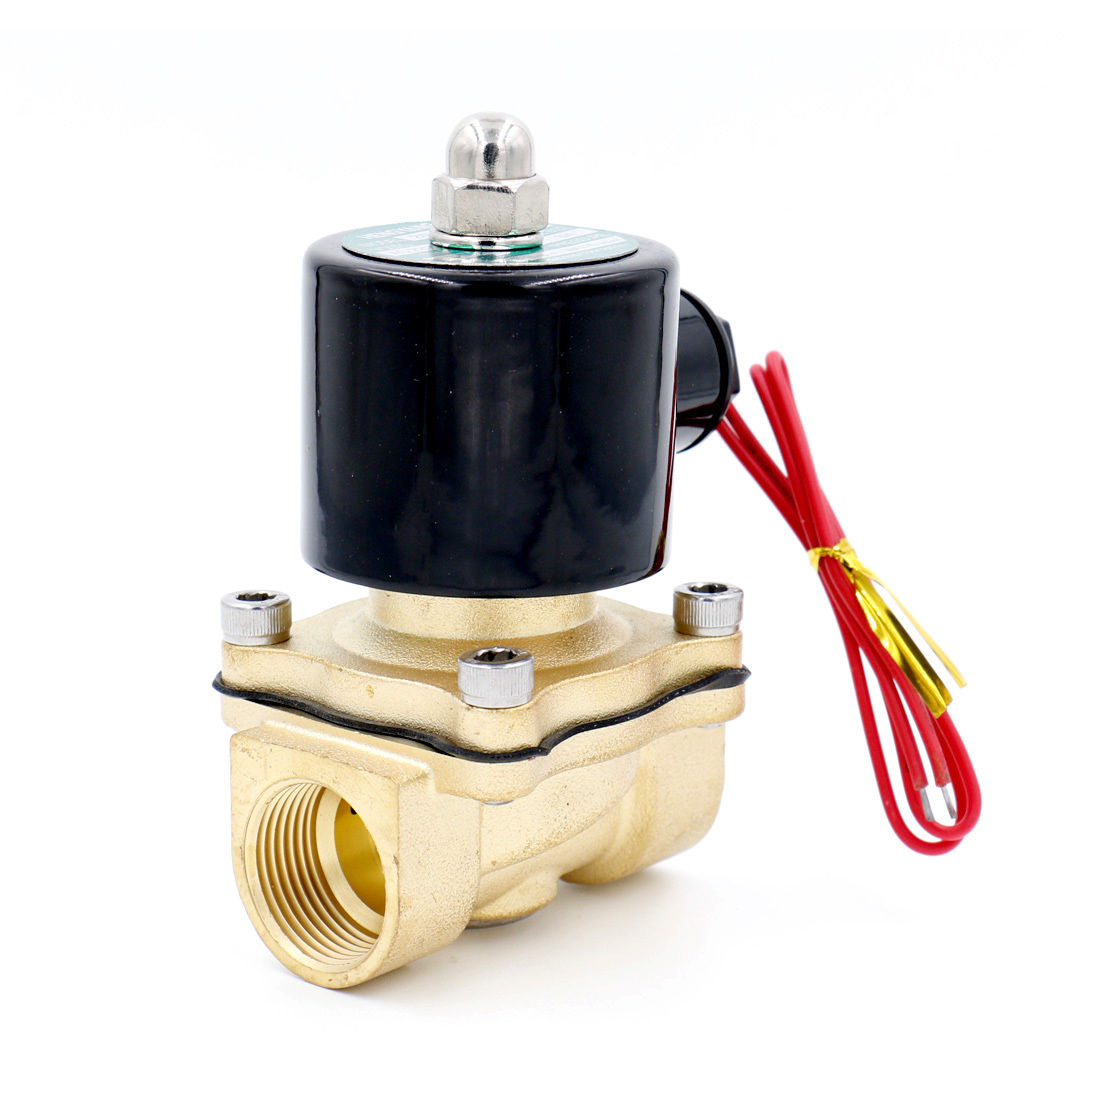 Brass Electric Solenoid Valve 2W-200-20 3/4 Inch NPT for Air Water Valve 110V NC marksojd